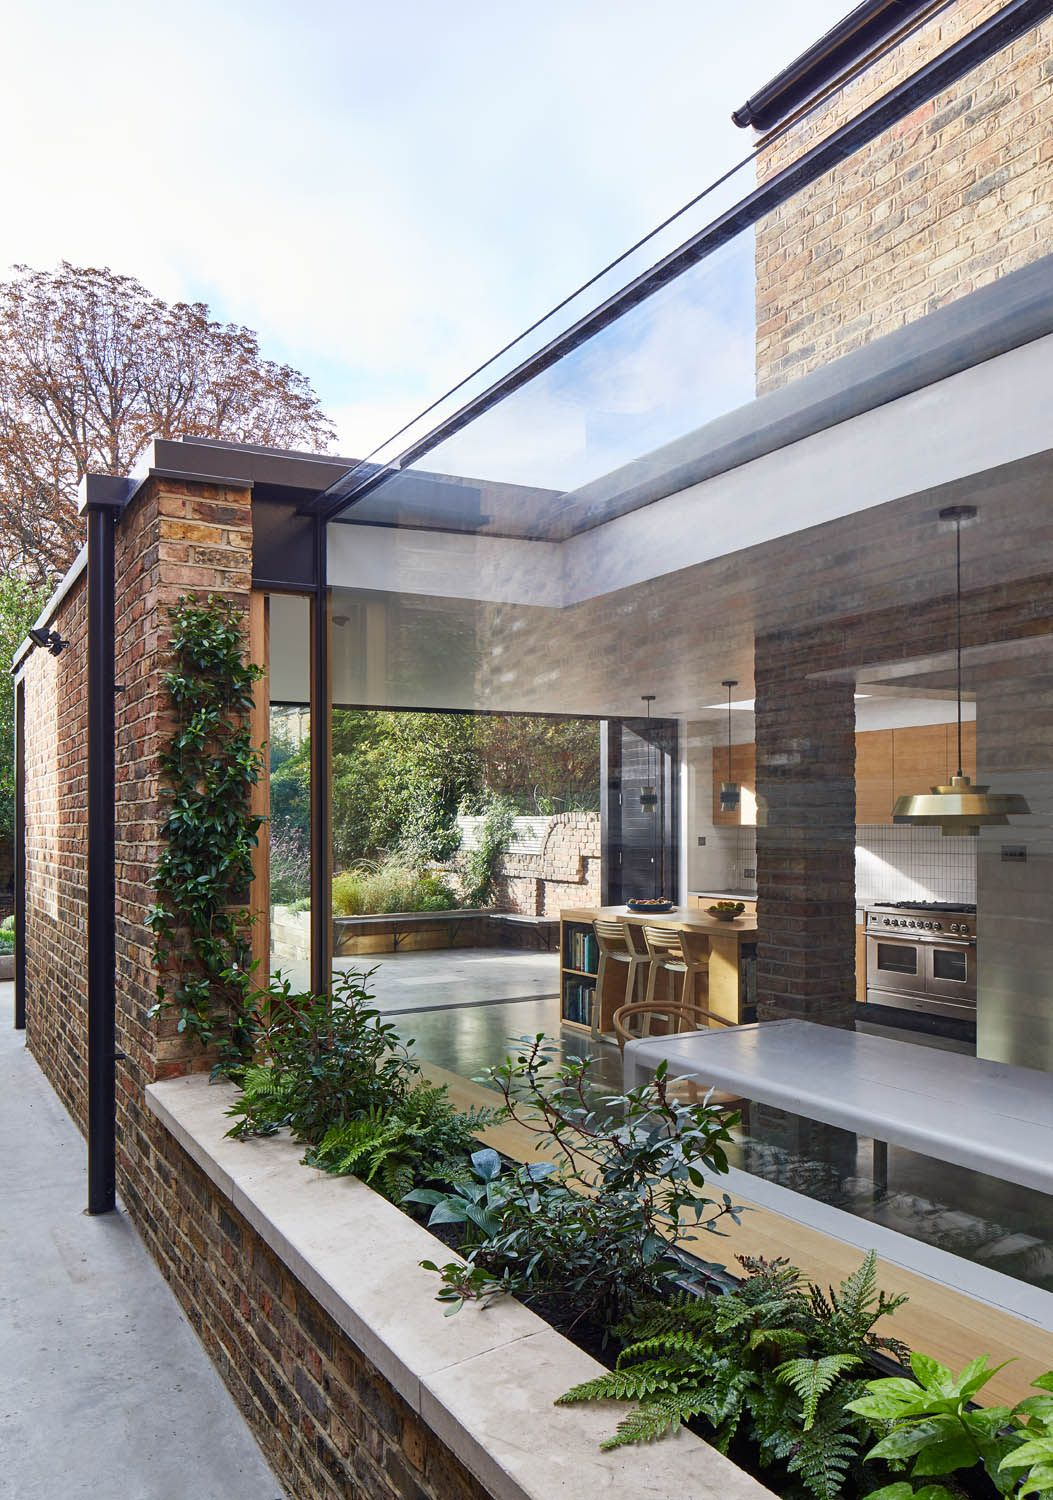 7 Stunning Home Extension Ideas: Victorian Terrace House, Architecture, Terrace House